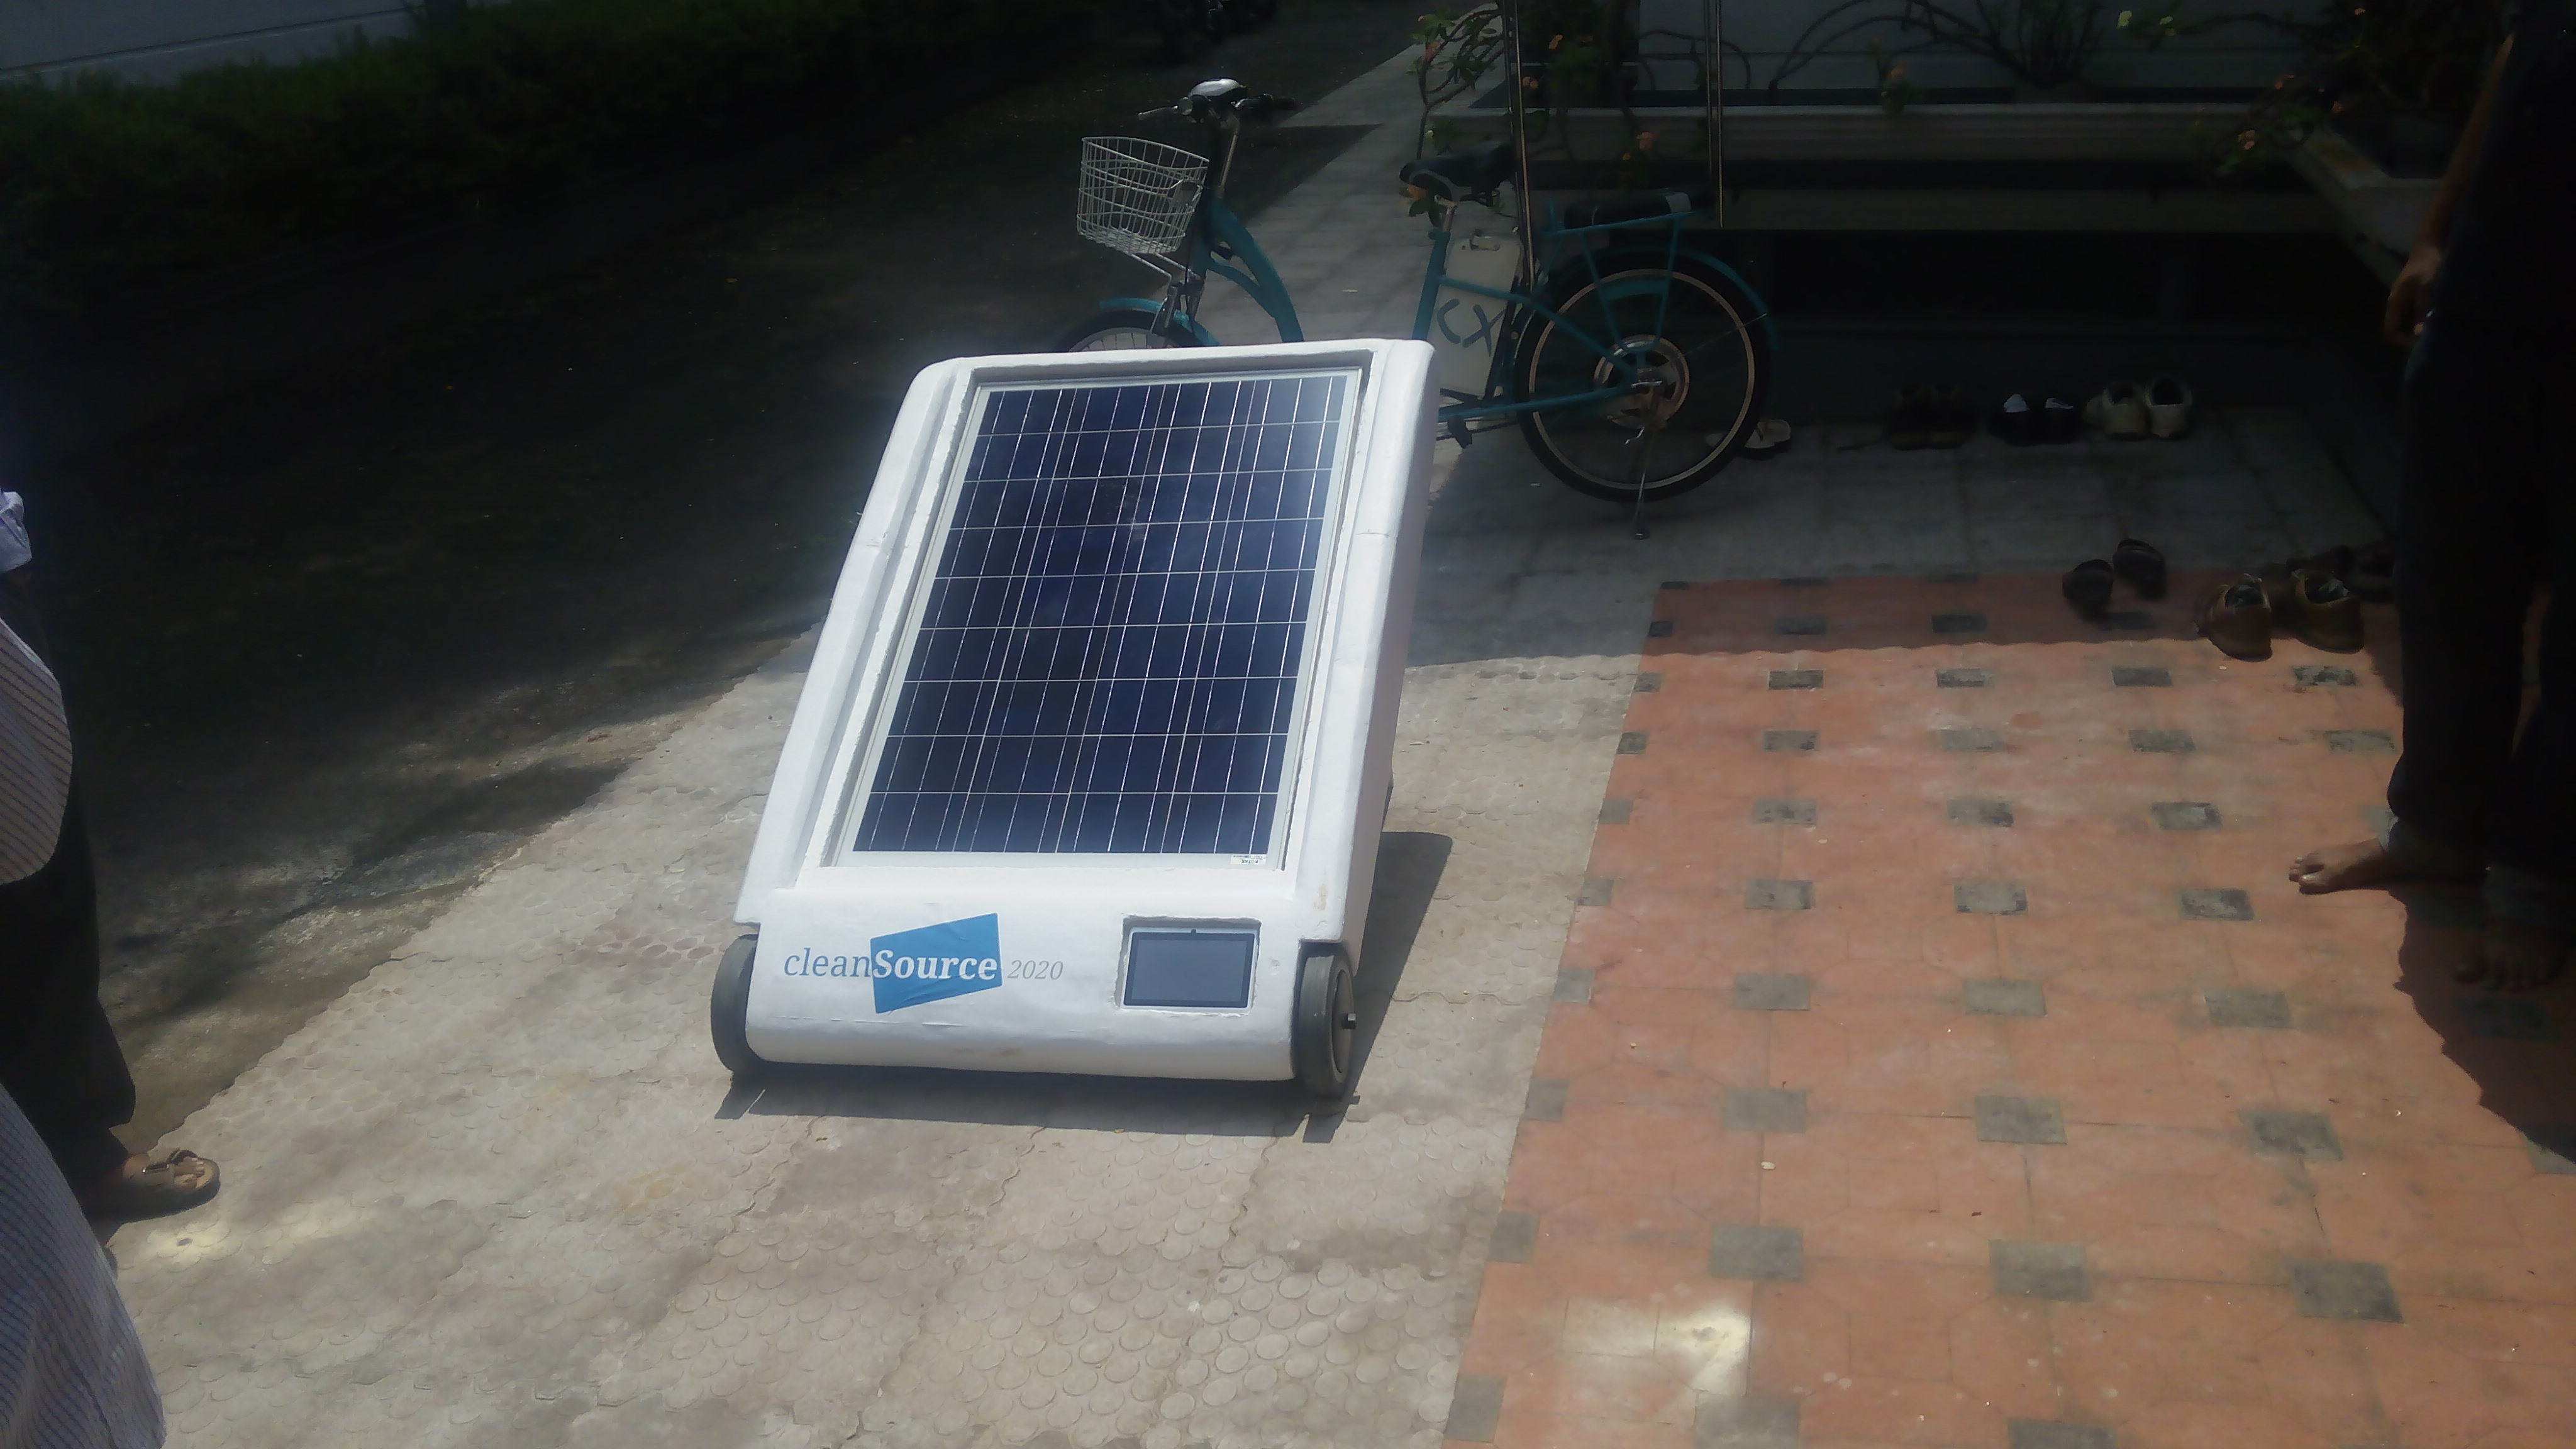 Desolenator aims to bring water independence to a billion people